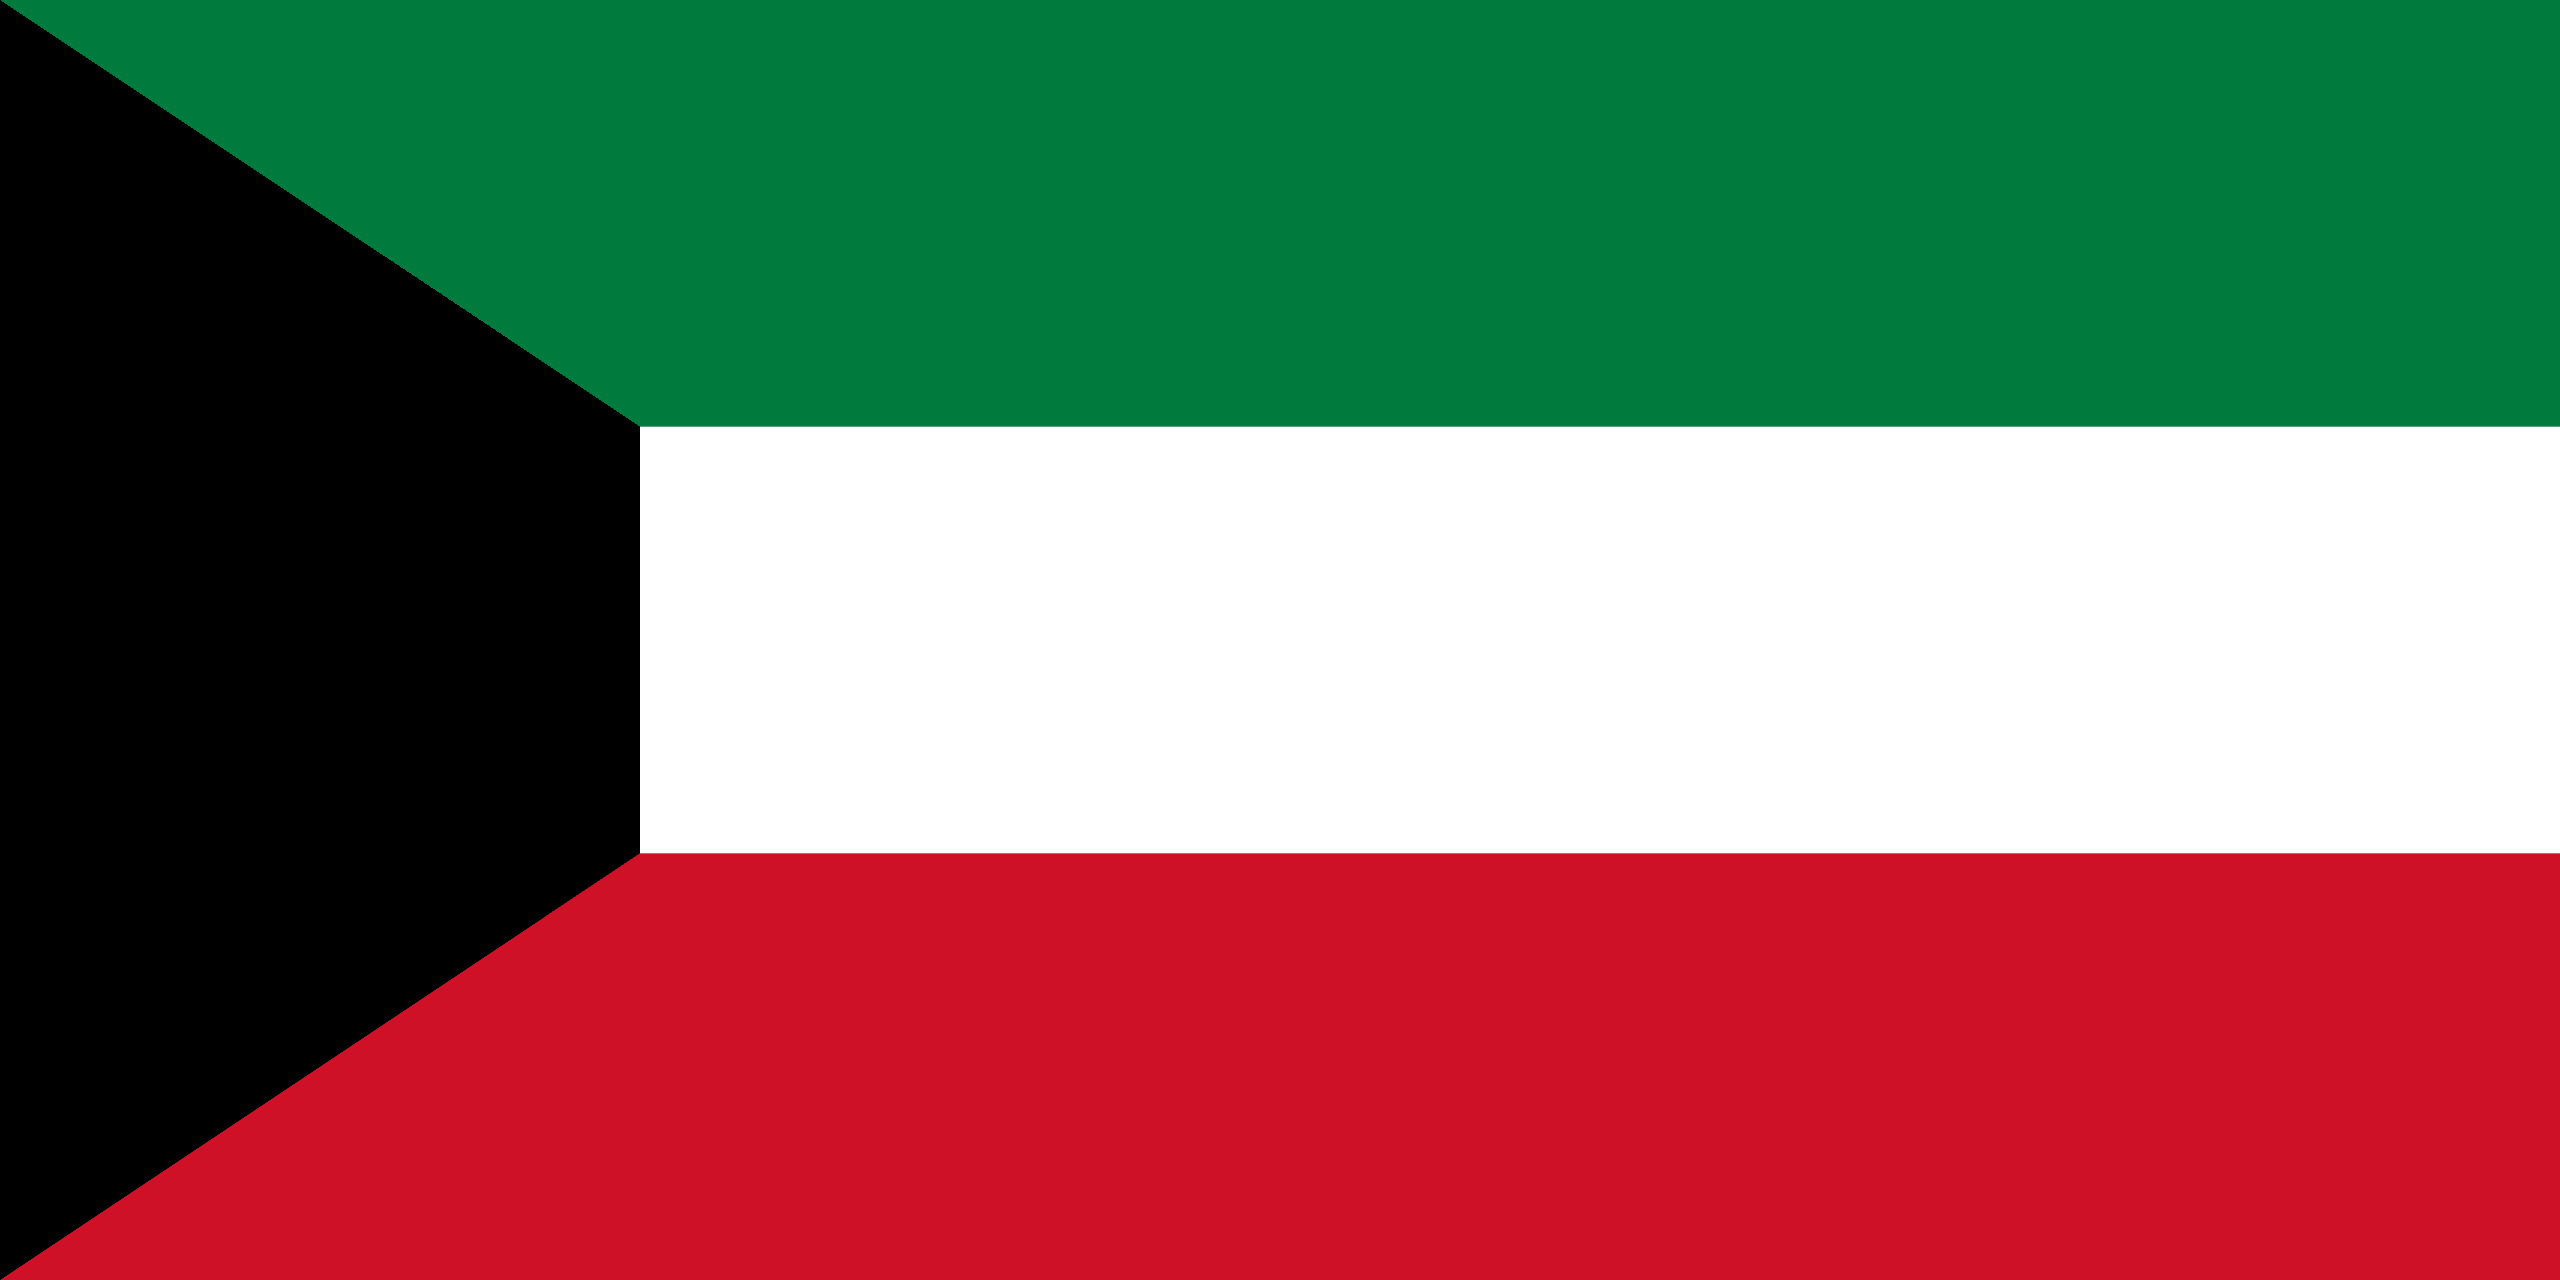 Kuwait | Flags of countries